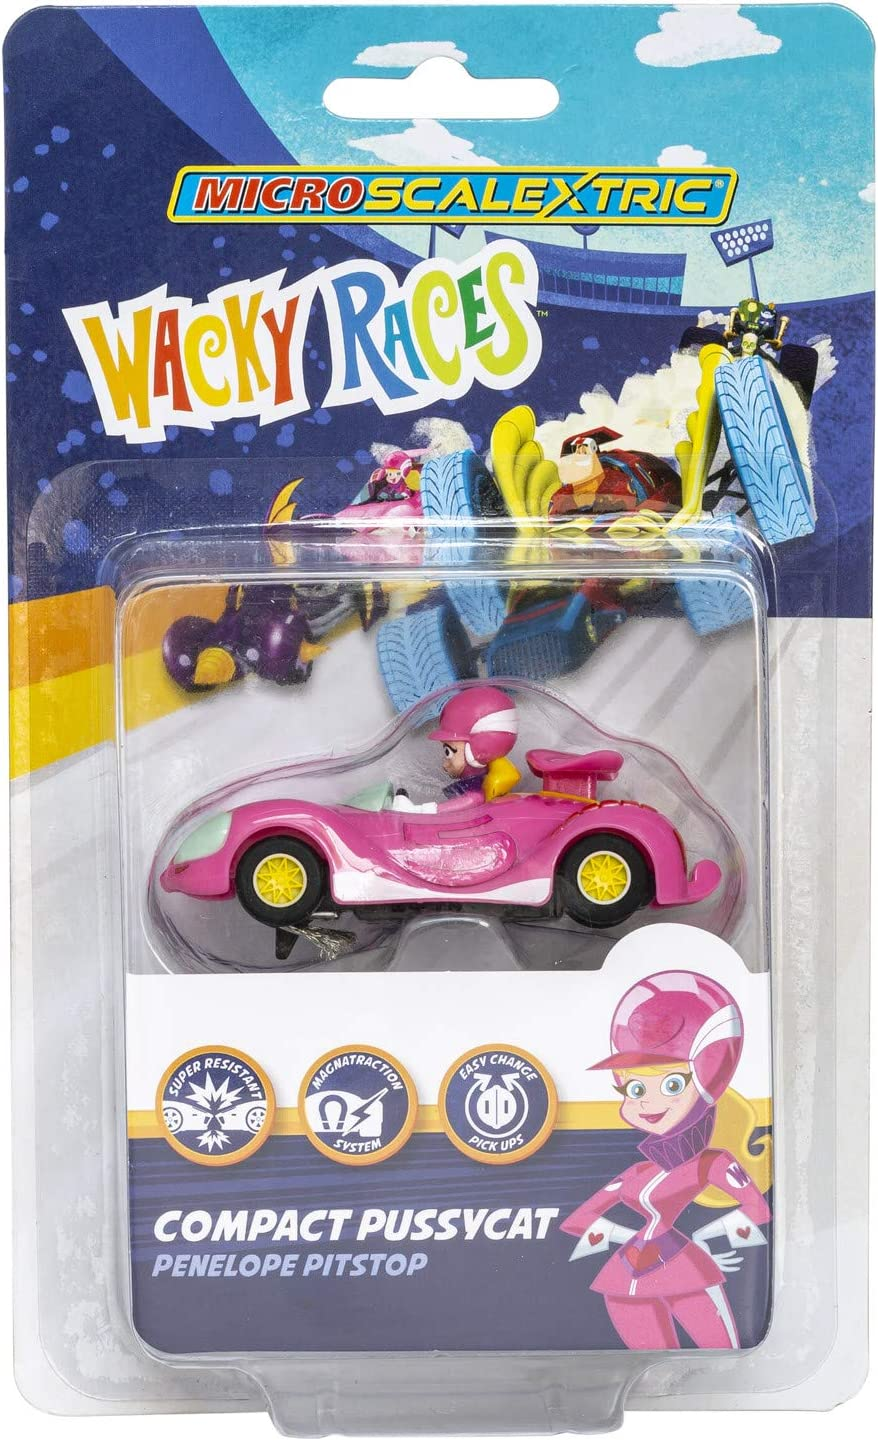 Track Extension Pack-Straights Analogue Curves and Loop Micro Scalextric Wacky Races with Dick Dastardly /& Muttley vs Peter Perfect Mains Powered Race Set Wacky Races Penelope Pitstop Car+++